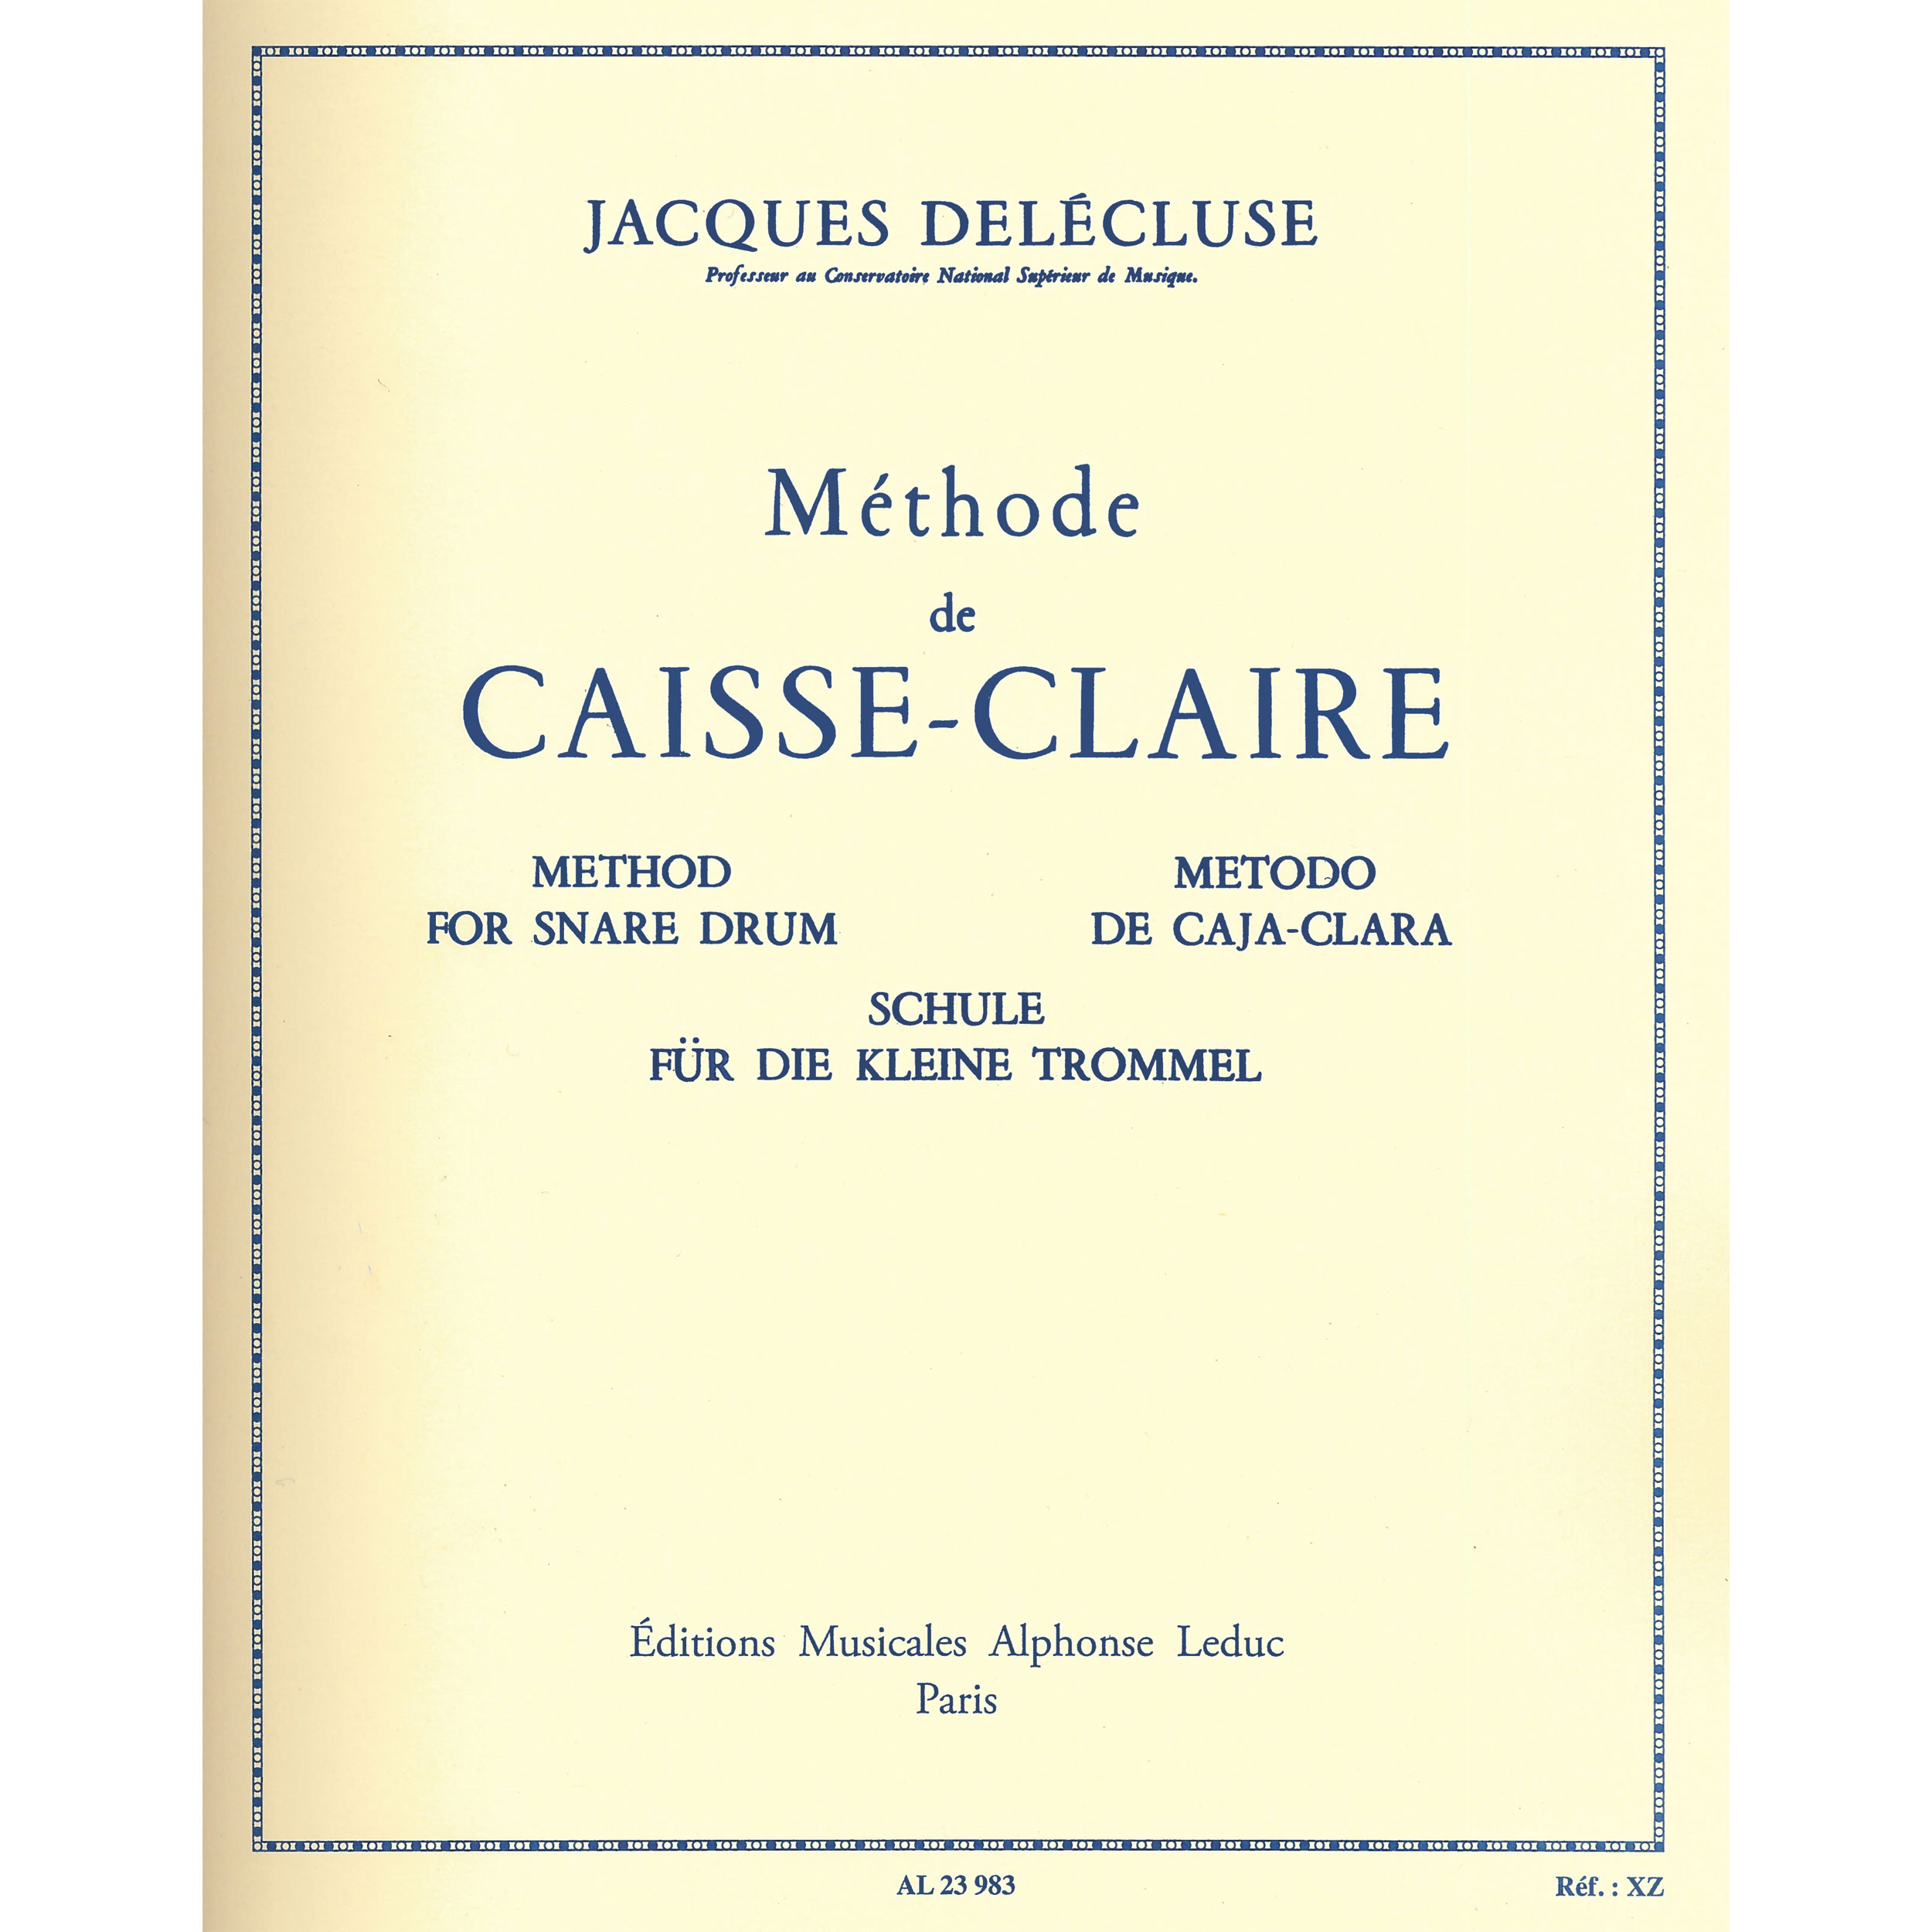 Methode de Caisse-Claire (Snare Drum Method) by Jacques Delecluse